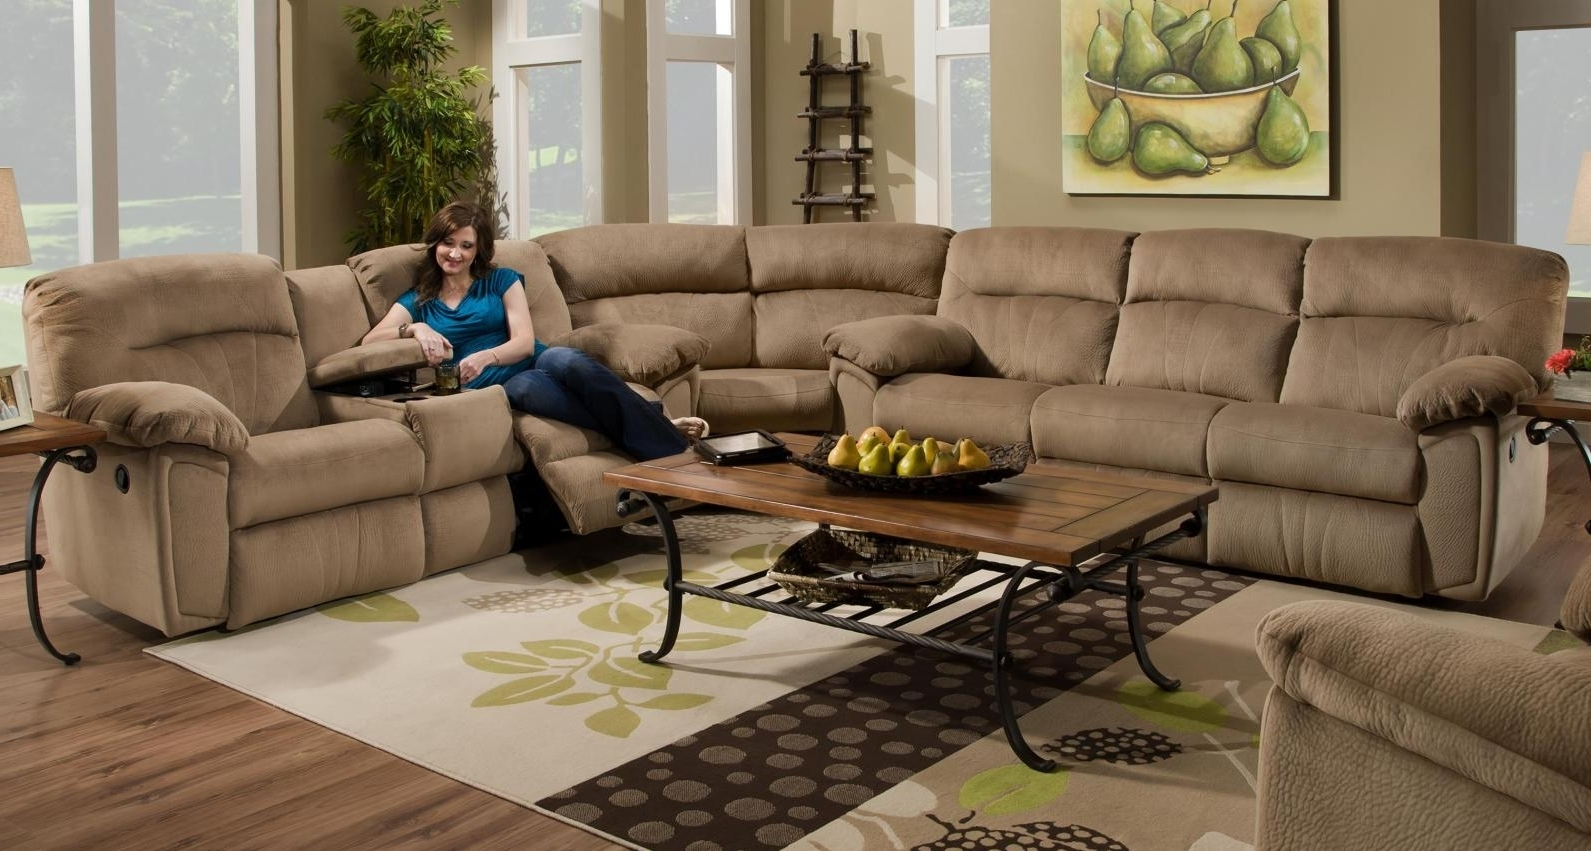 Collection Sectional Sofas Portland – Mediasupload Throughout Famous Portland Sectional Sofas (View 11 of 20)